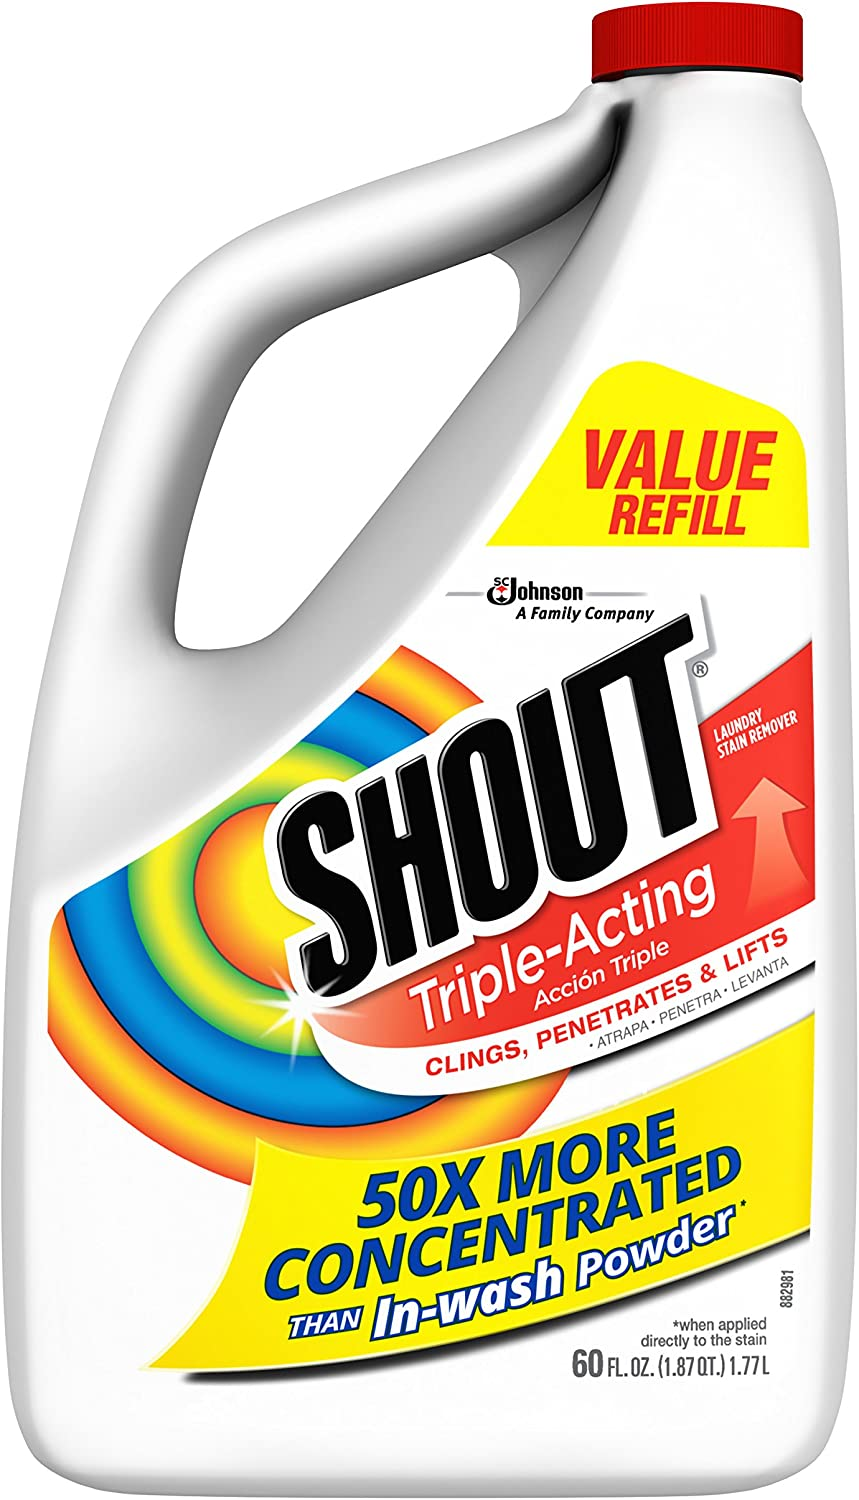 Shout Triple-Acting Laundry Stain Remover for Everyday Stains Liquid Refill, 60 fl oz - Pack of 6